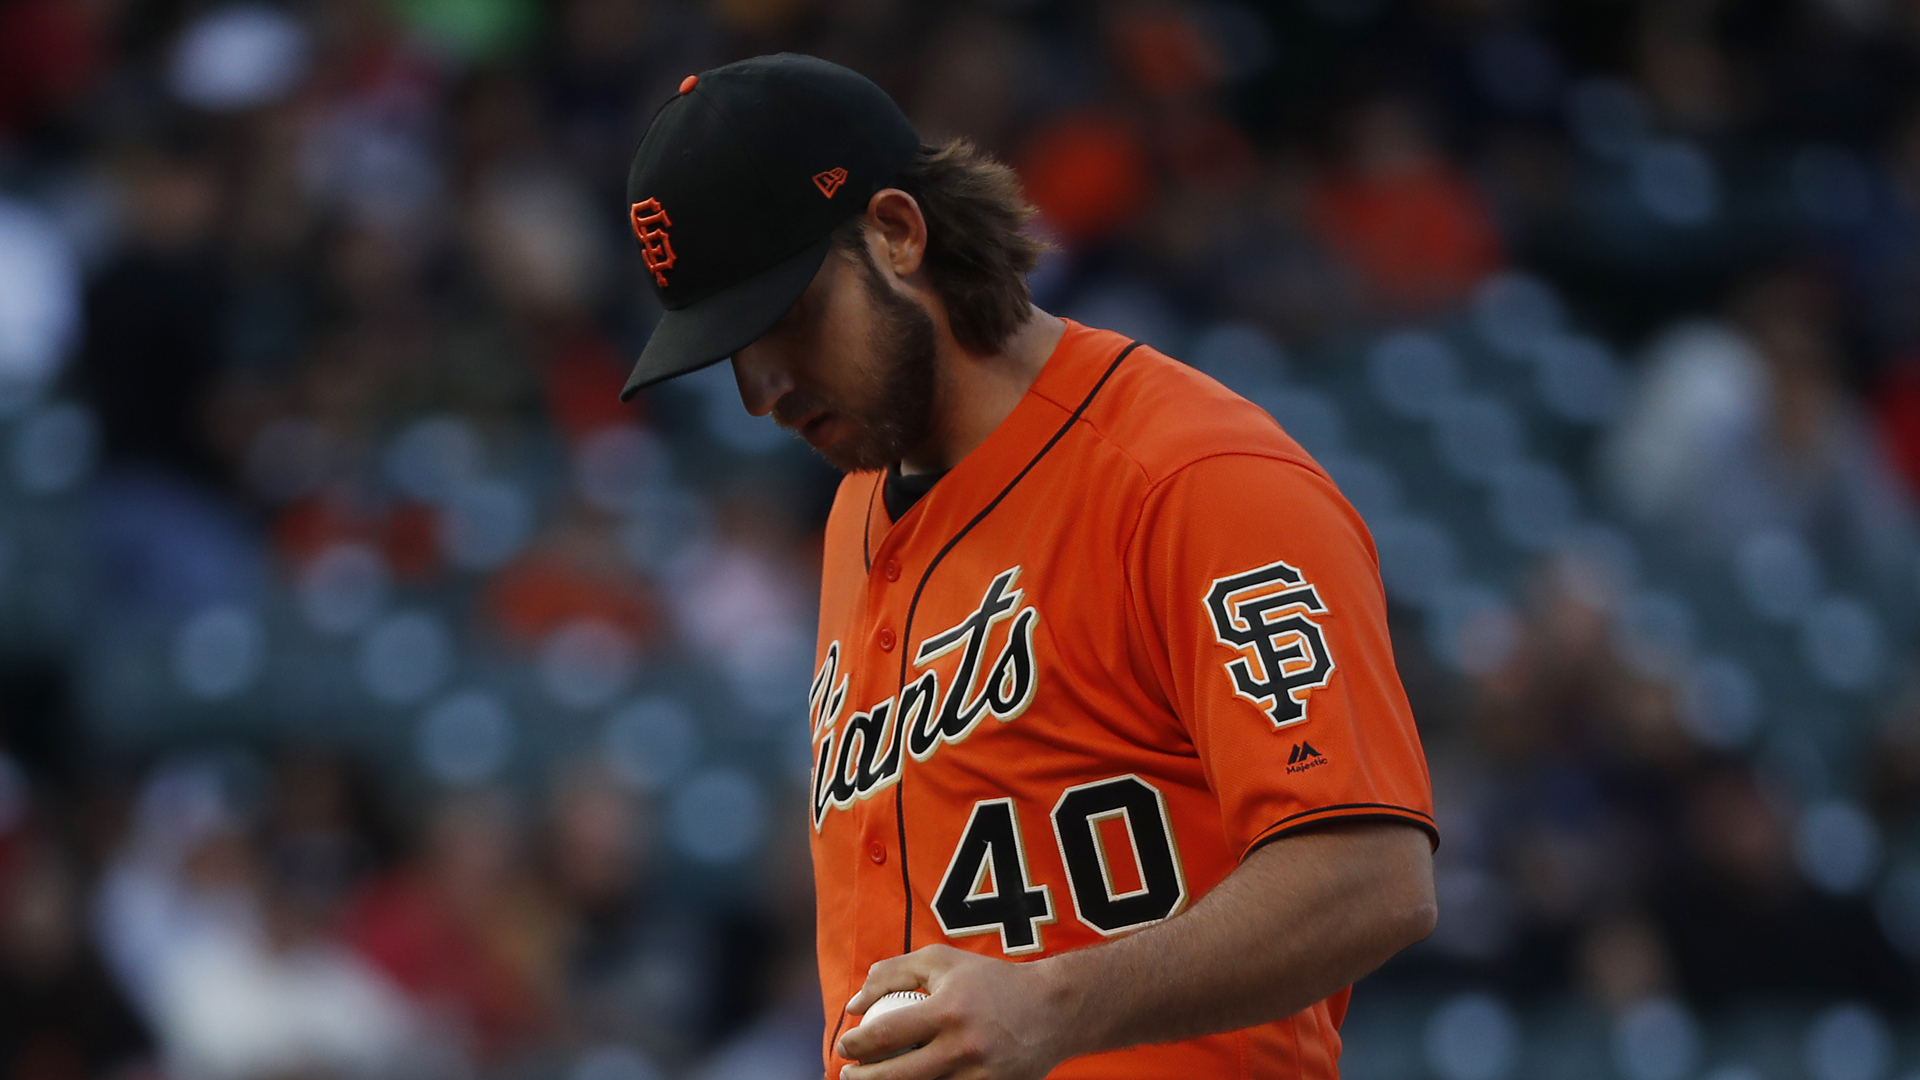 Madison Bumgarner Breaks Bone on Pitching Hand